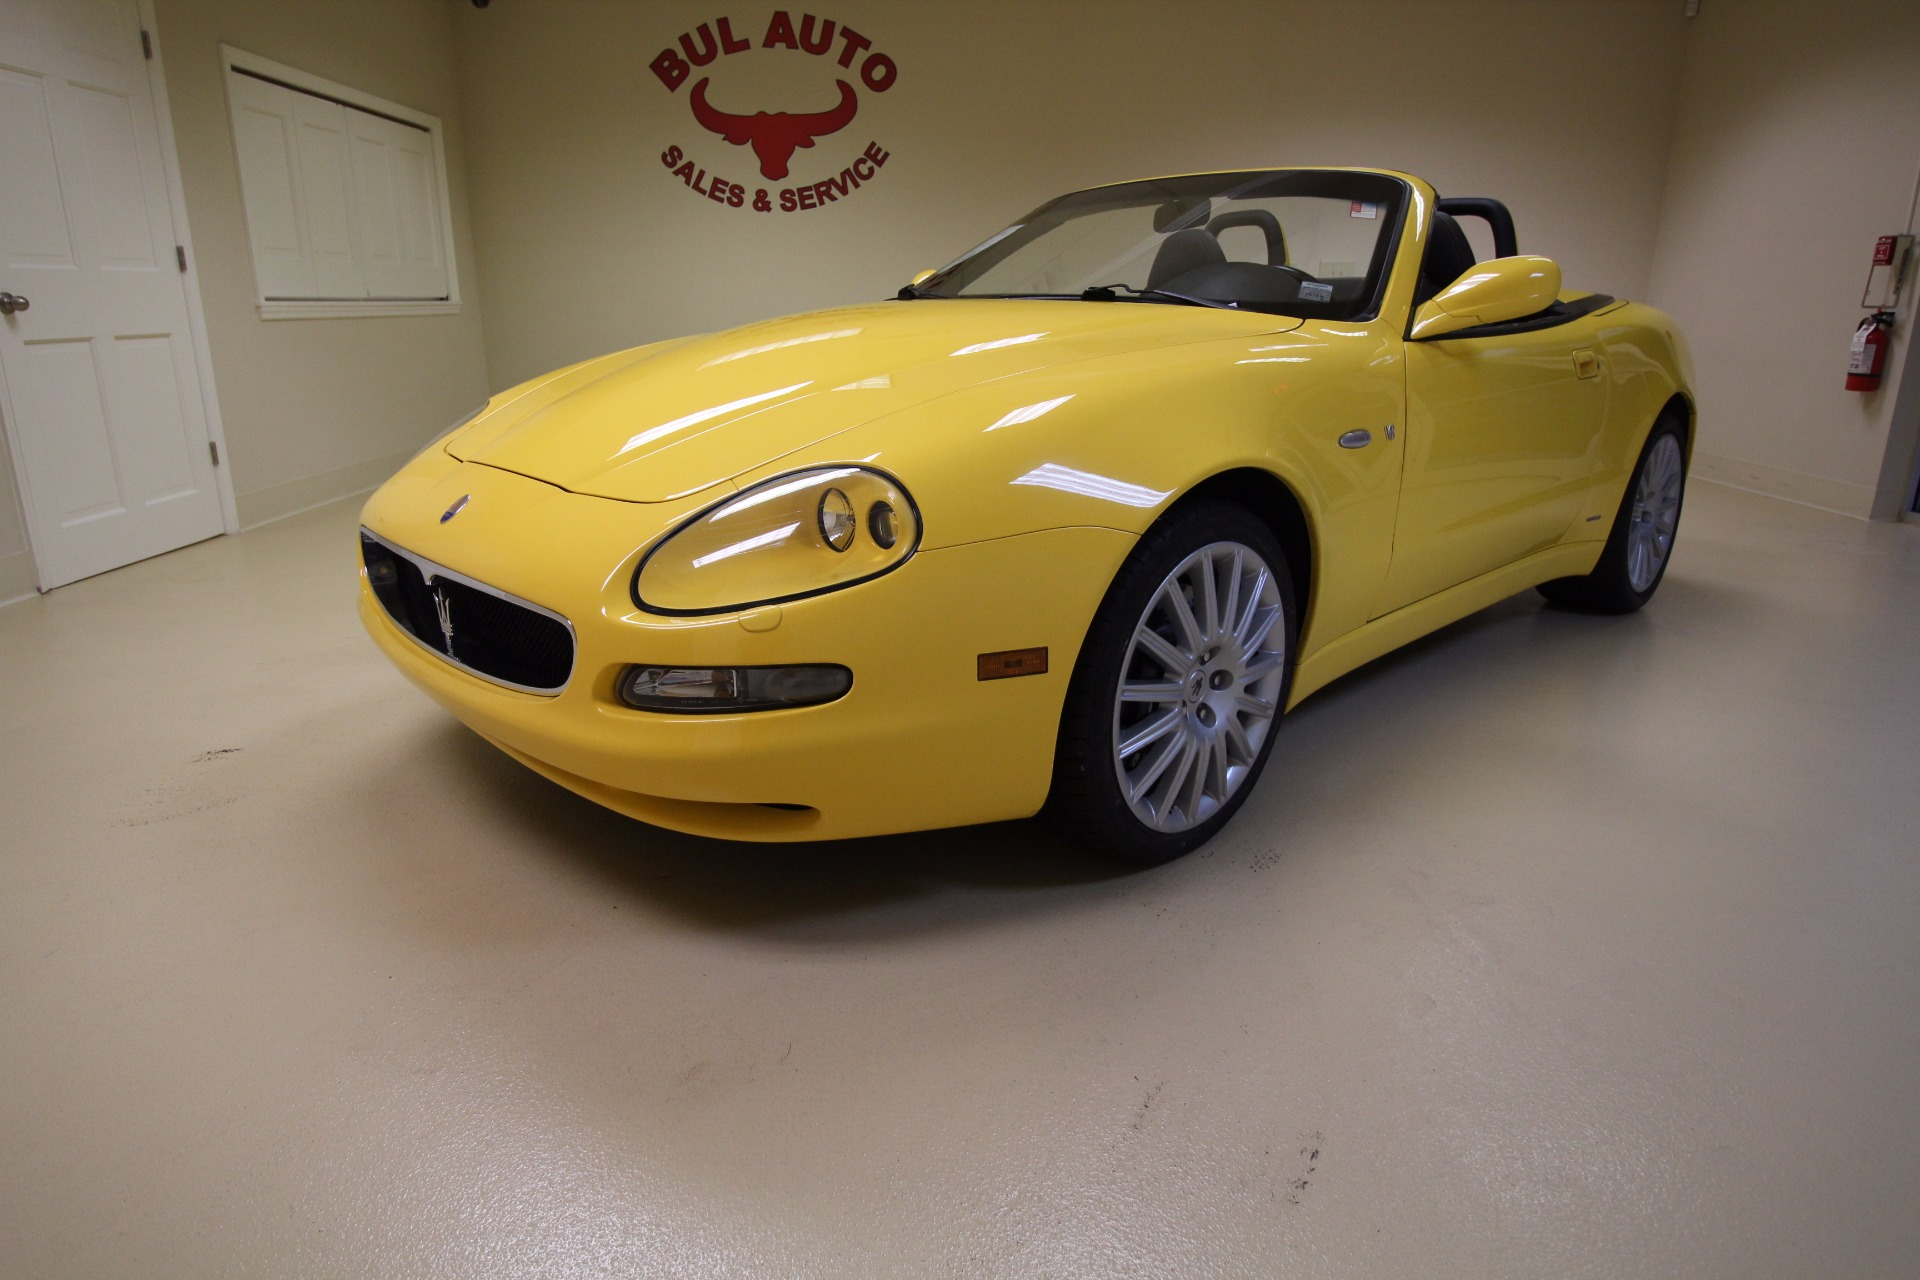 Used Yellow Cars for Sale Near Me Best Of Used Yellow Cars for Sale Near Me Lovely 2003 Maserati Spyder